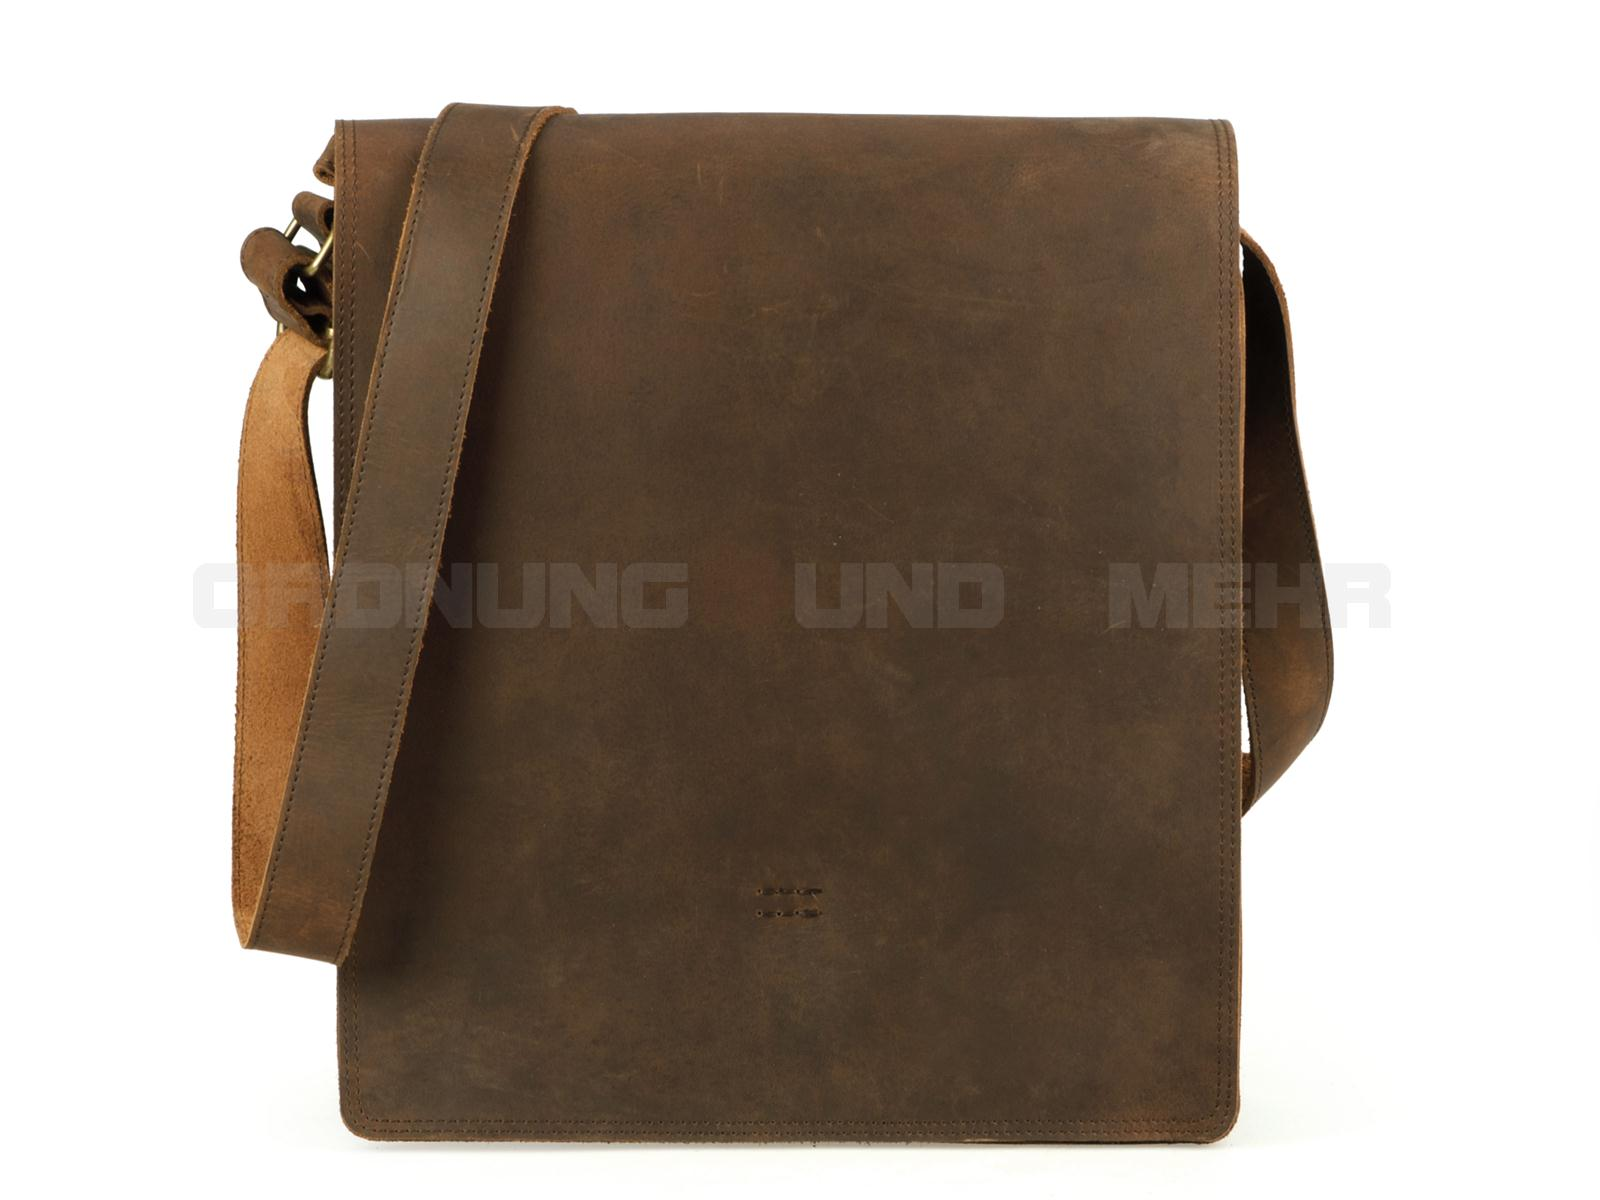 LeBazaar Full Leather Leder Umhängetasche 7809-03_03